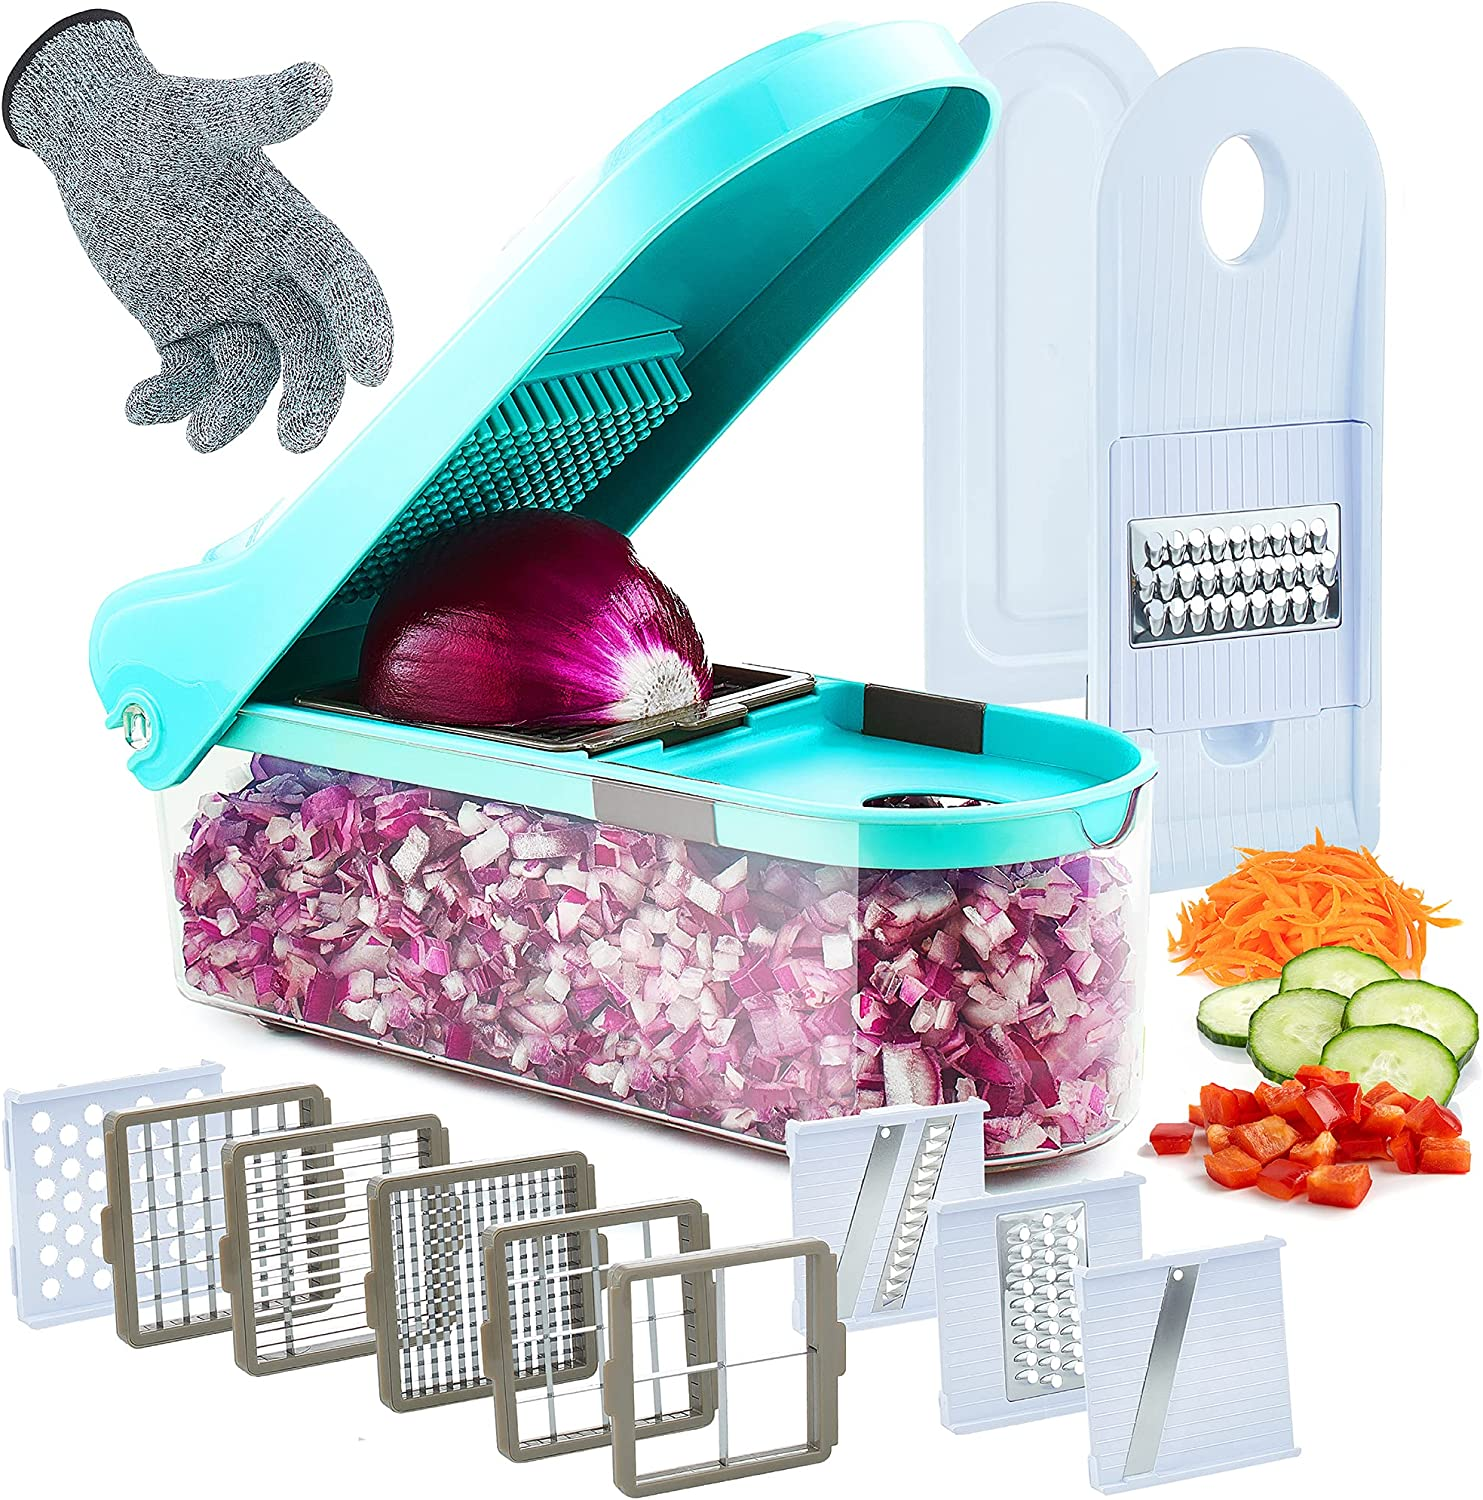 Vegetable Chopper, Slicer, Dicer, Nicer - Food Cutter for Veggie as Onion, Fry, Potato, Tomato, Salad - 9 Chop & Mandoline Blades, Resistant Glove, Peeler, Storage Container - Manual Hand Kitchen Tool